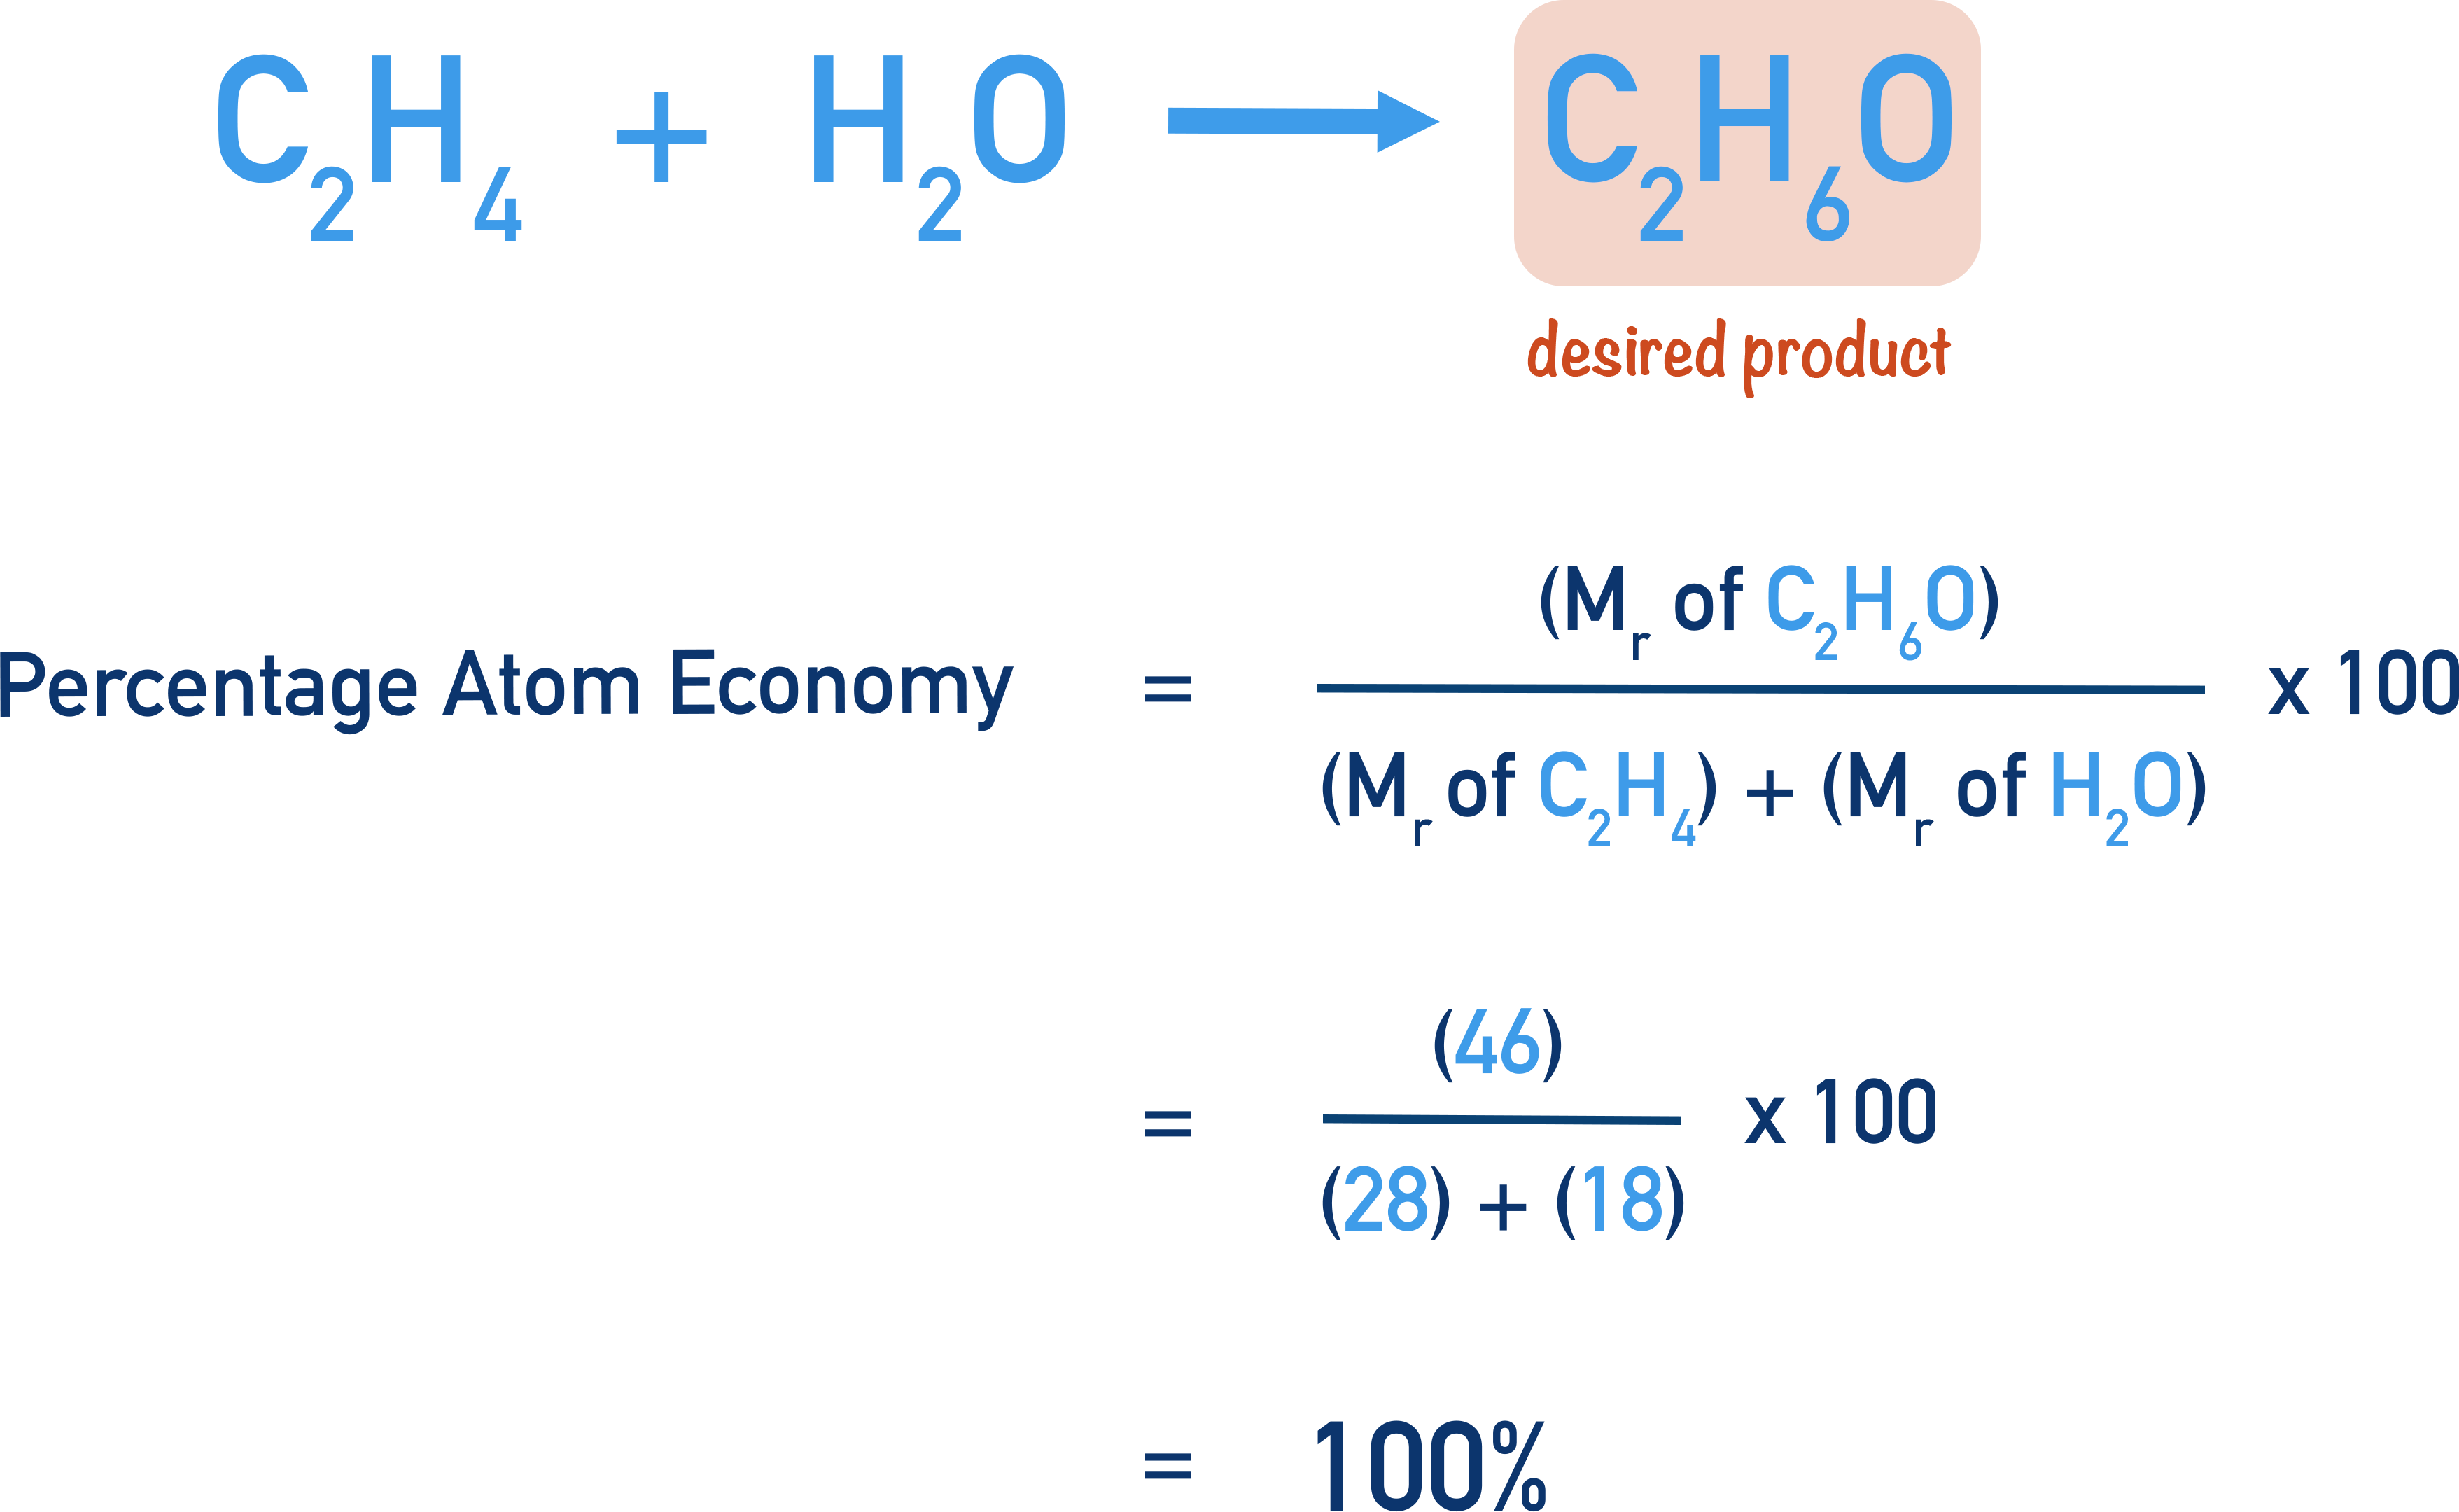 finding percentage atom economy for production of ethanol from ethene and water C2H4 + H2O forms C2H6O